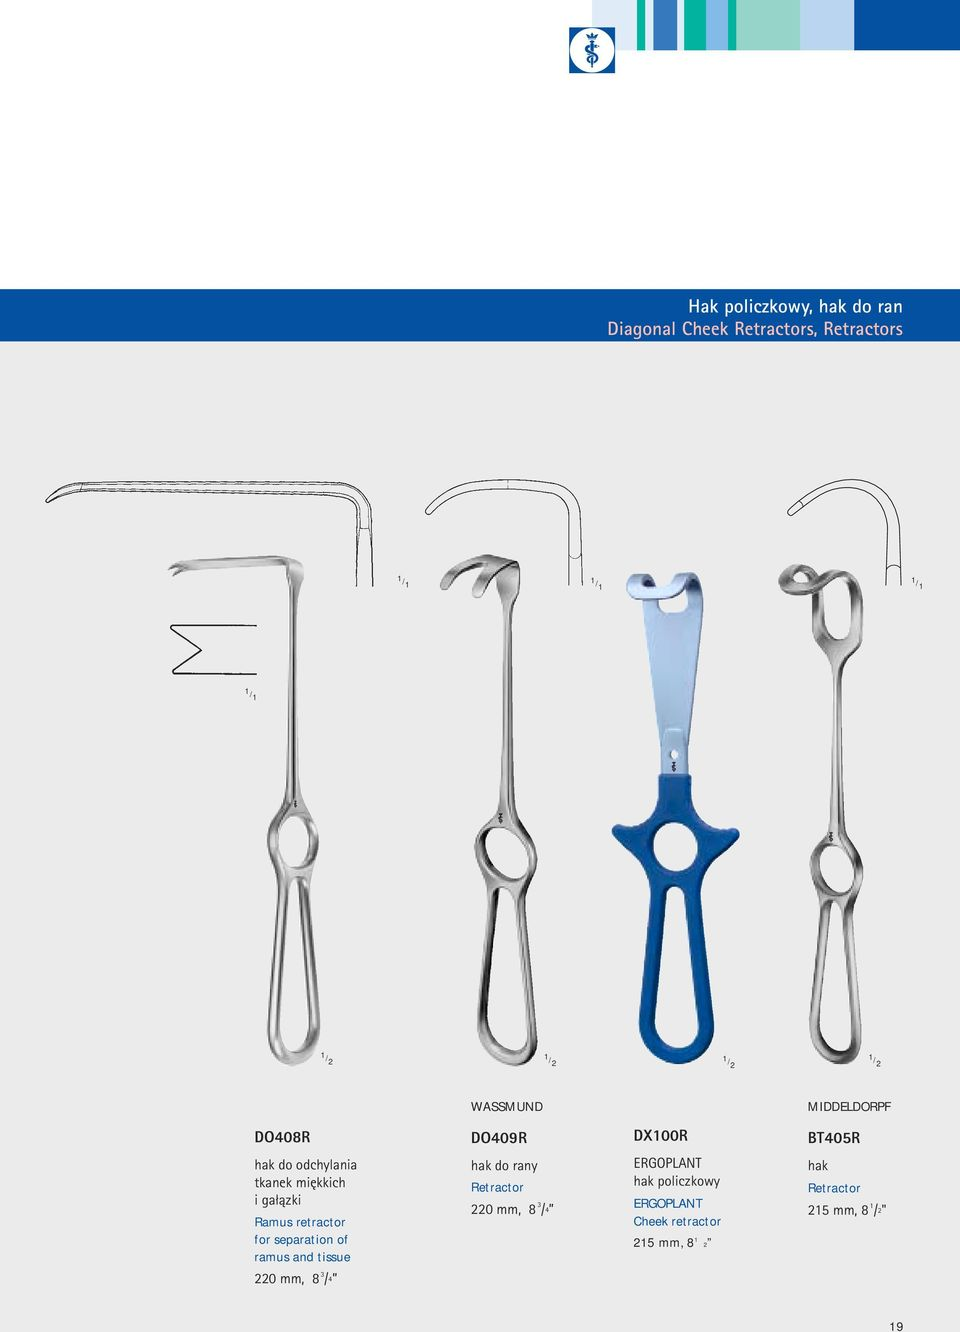 for separation of ramus and tissue hak do rany Retractor 220 mm, 8 3 / 4 ERGOPLANT hak